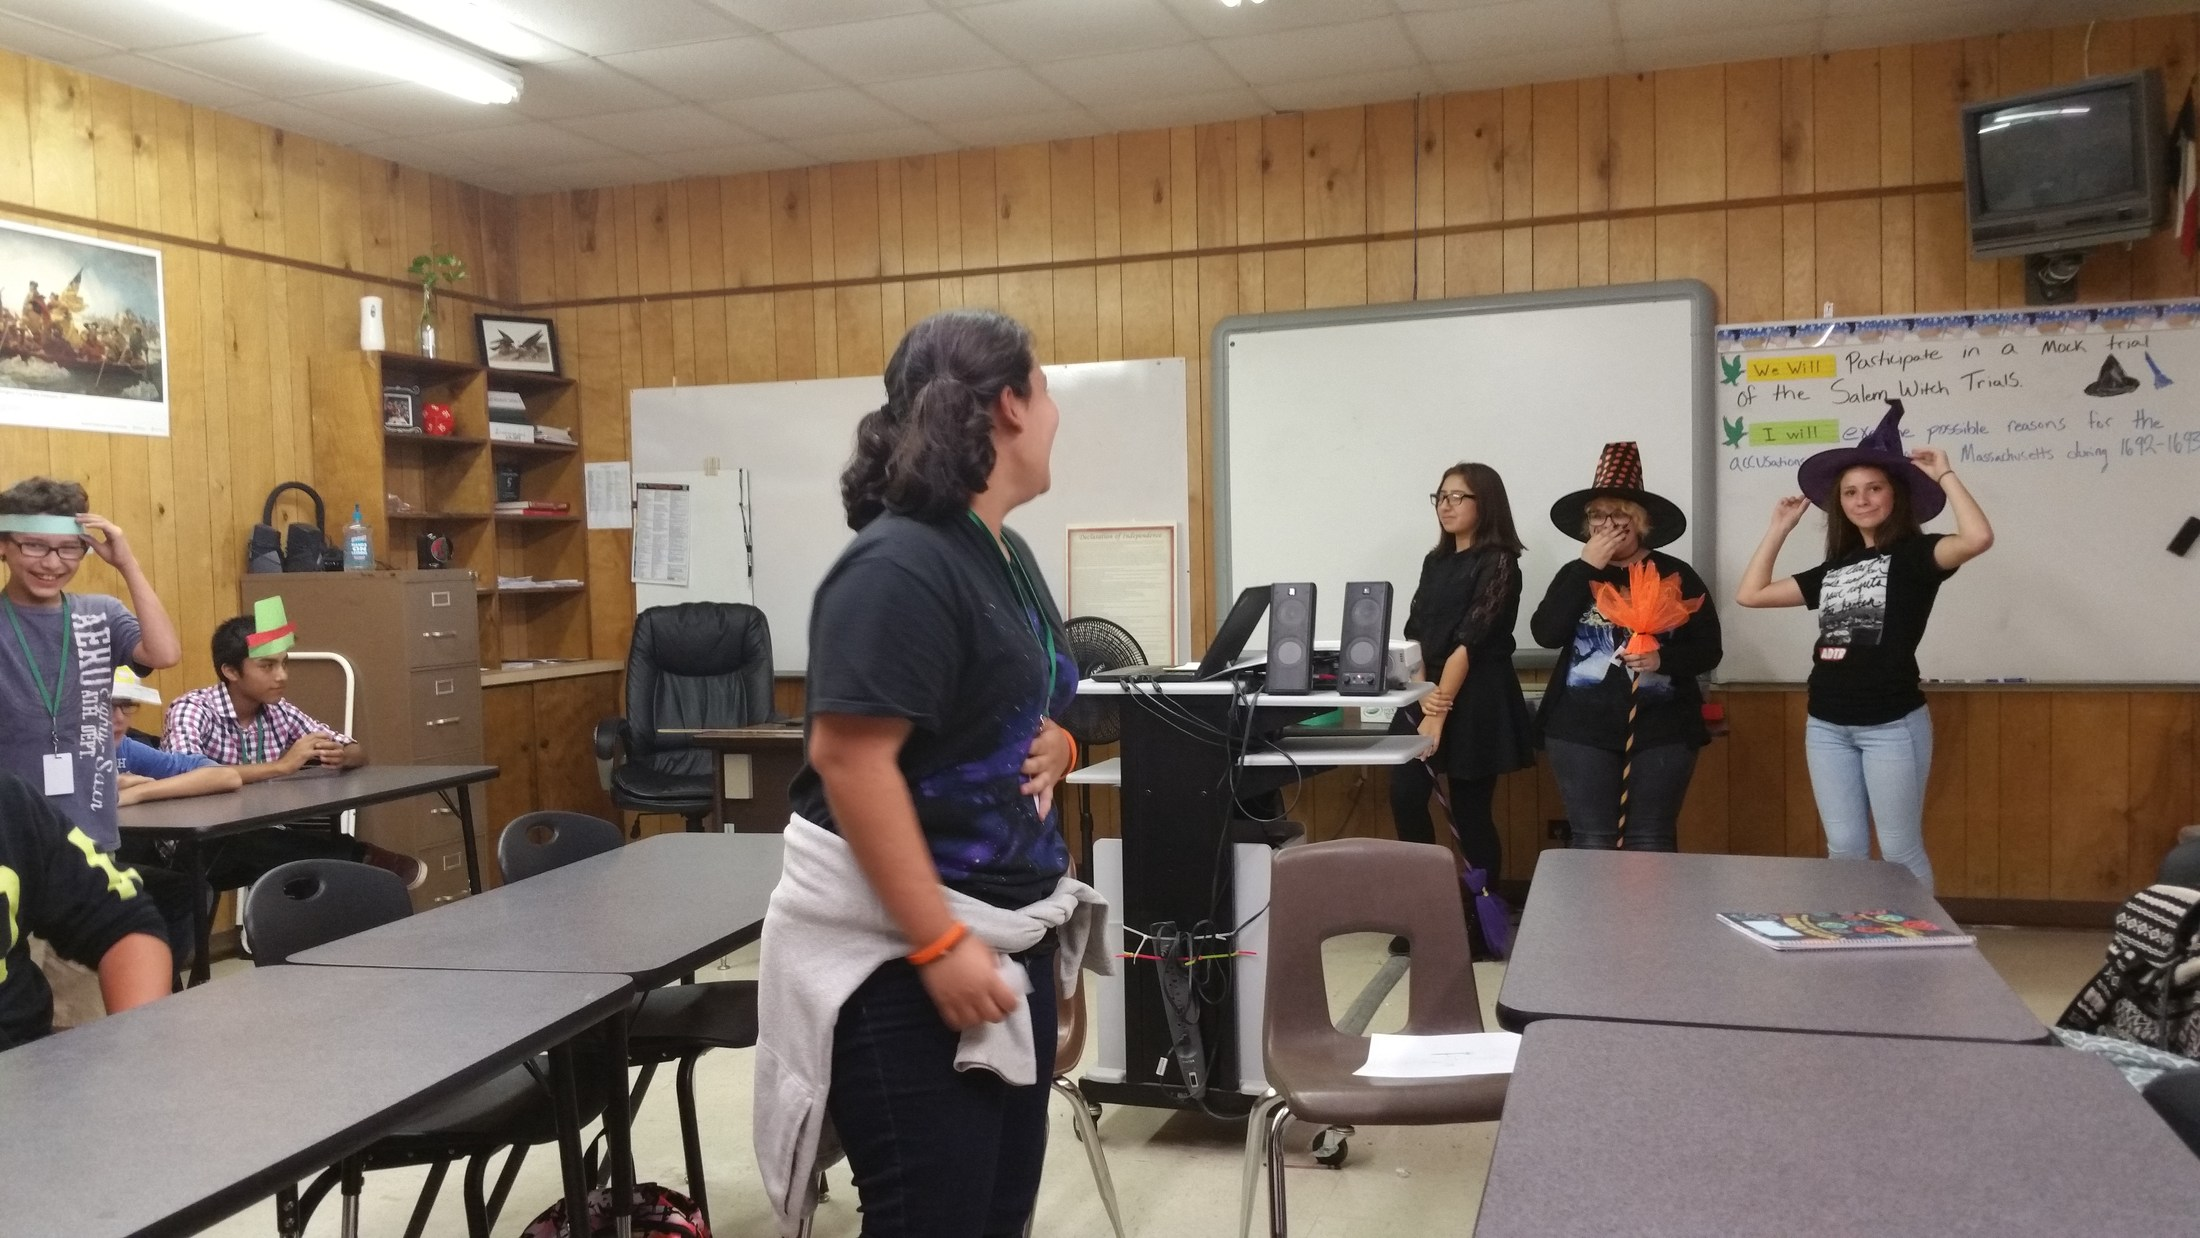 Students participating in mock Salem Witch Trials